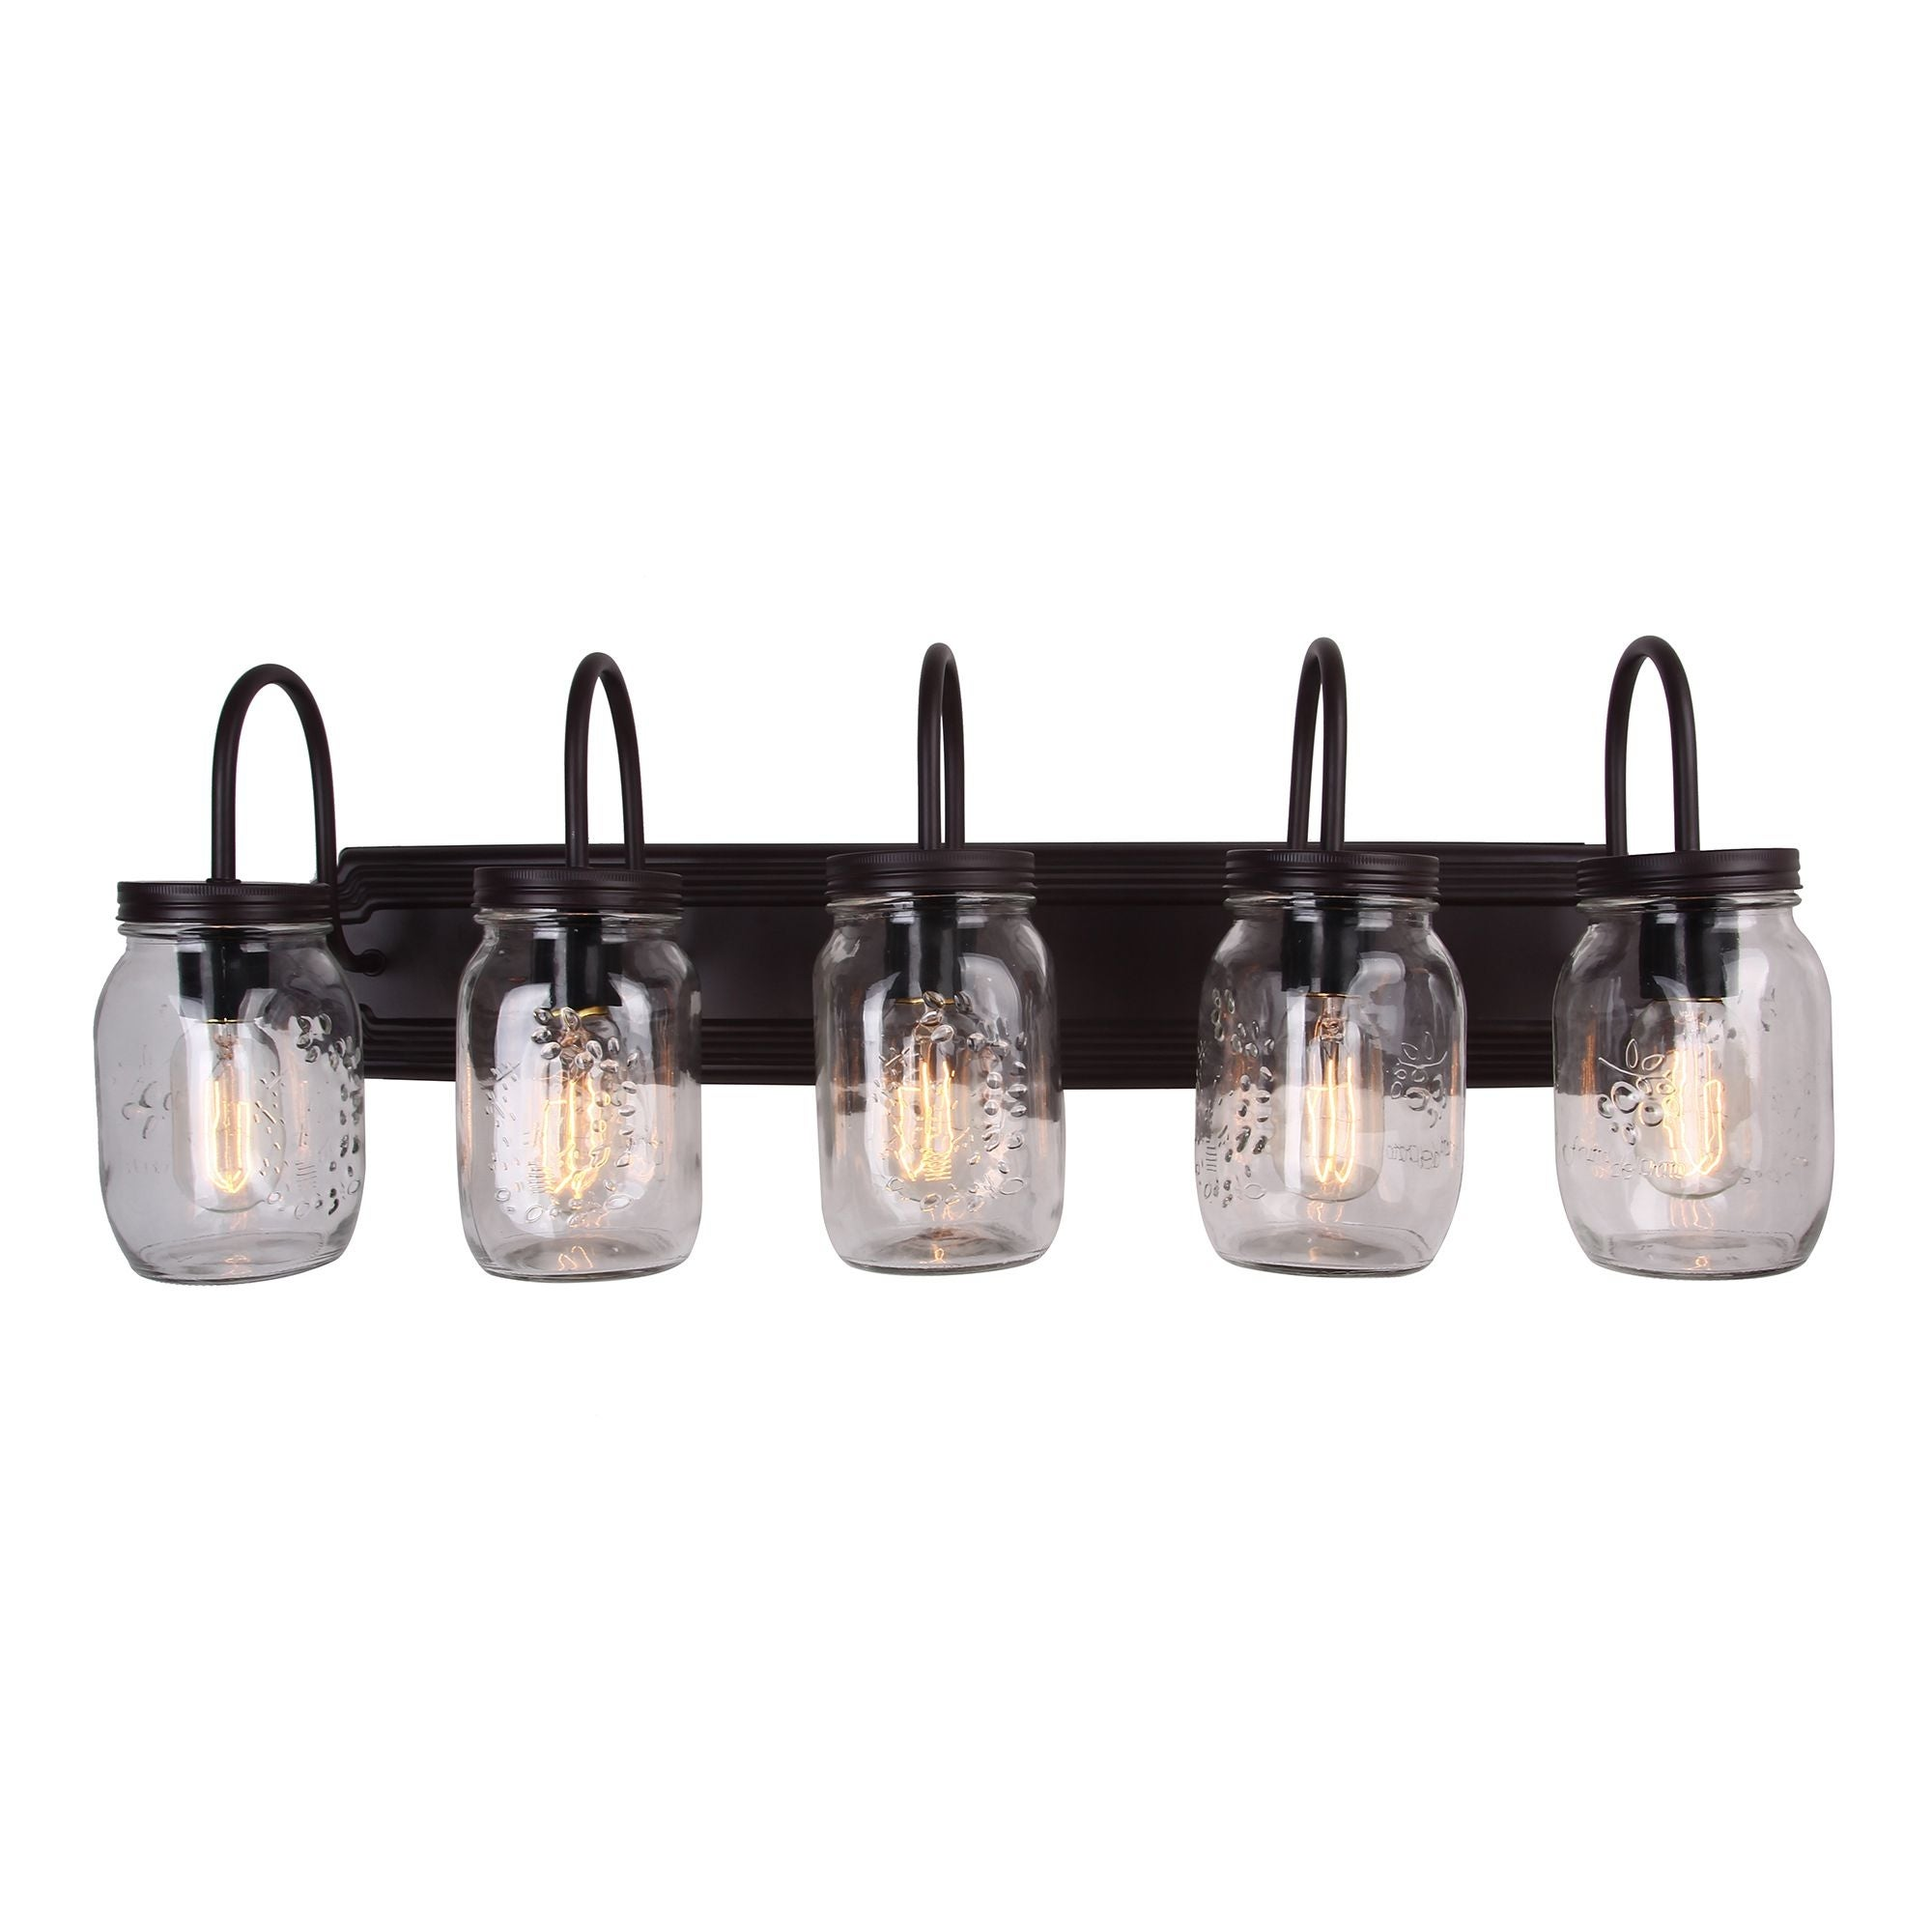 5 Light Mason Jar Vanity Fixture With Gl Shade